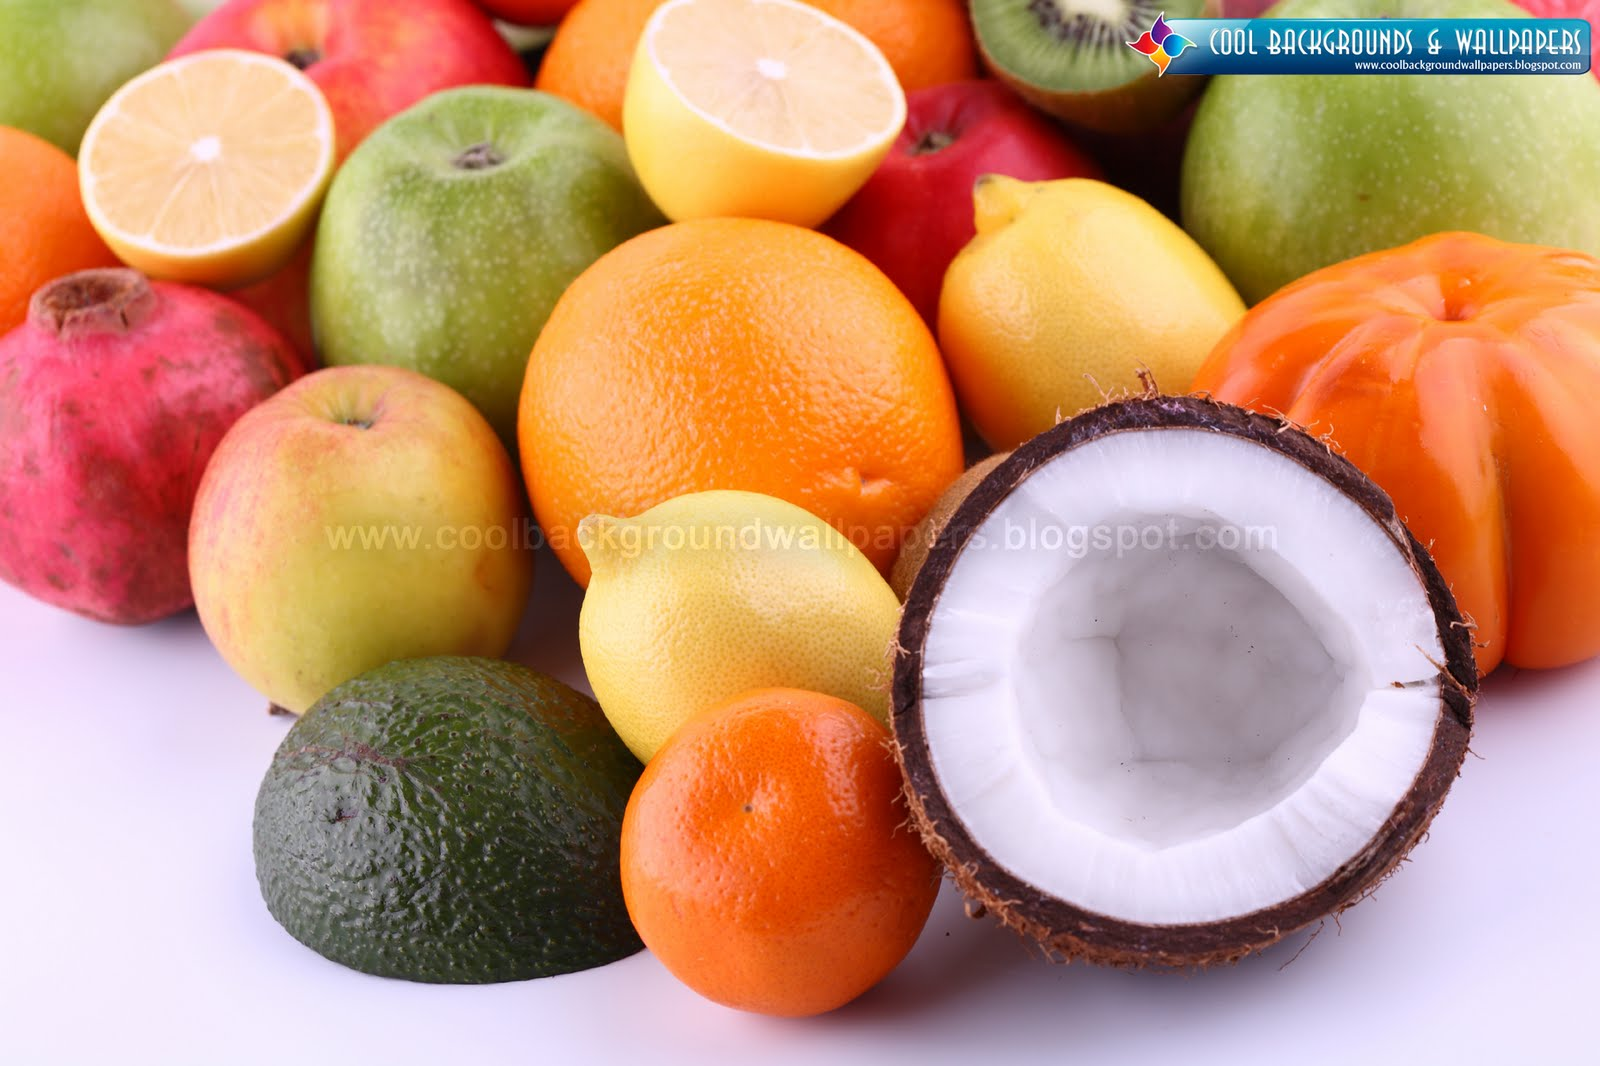 Cute Backgrounds and Wallpapers Tropical fruits Wallpapers 1600x1066